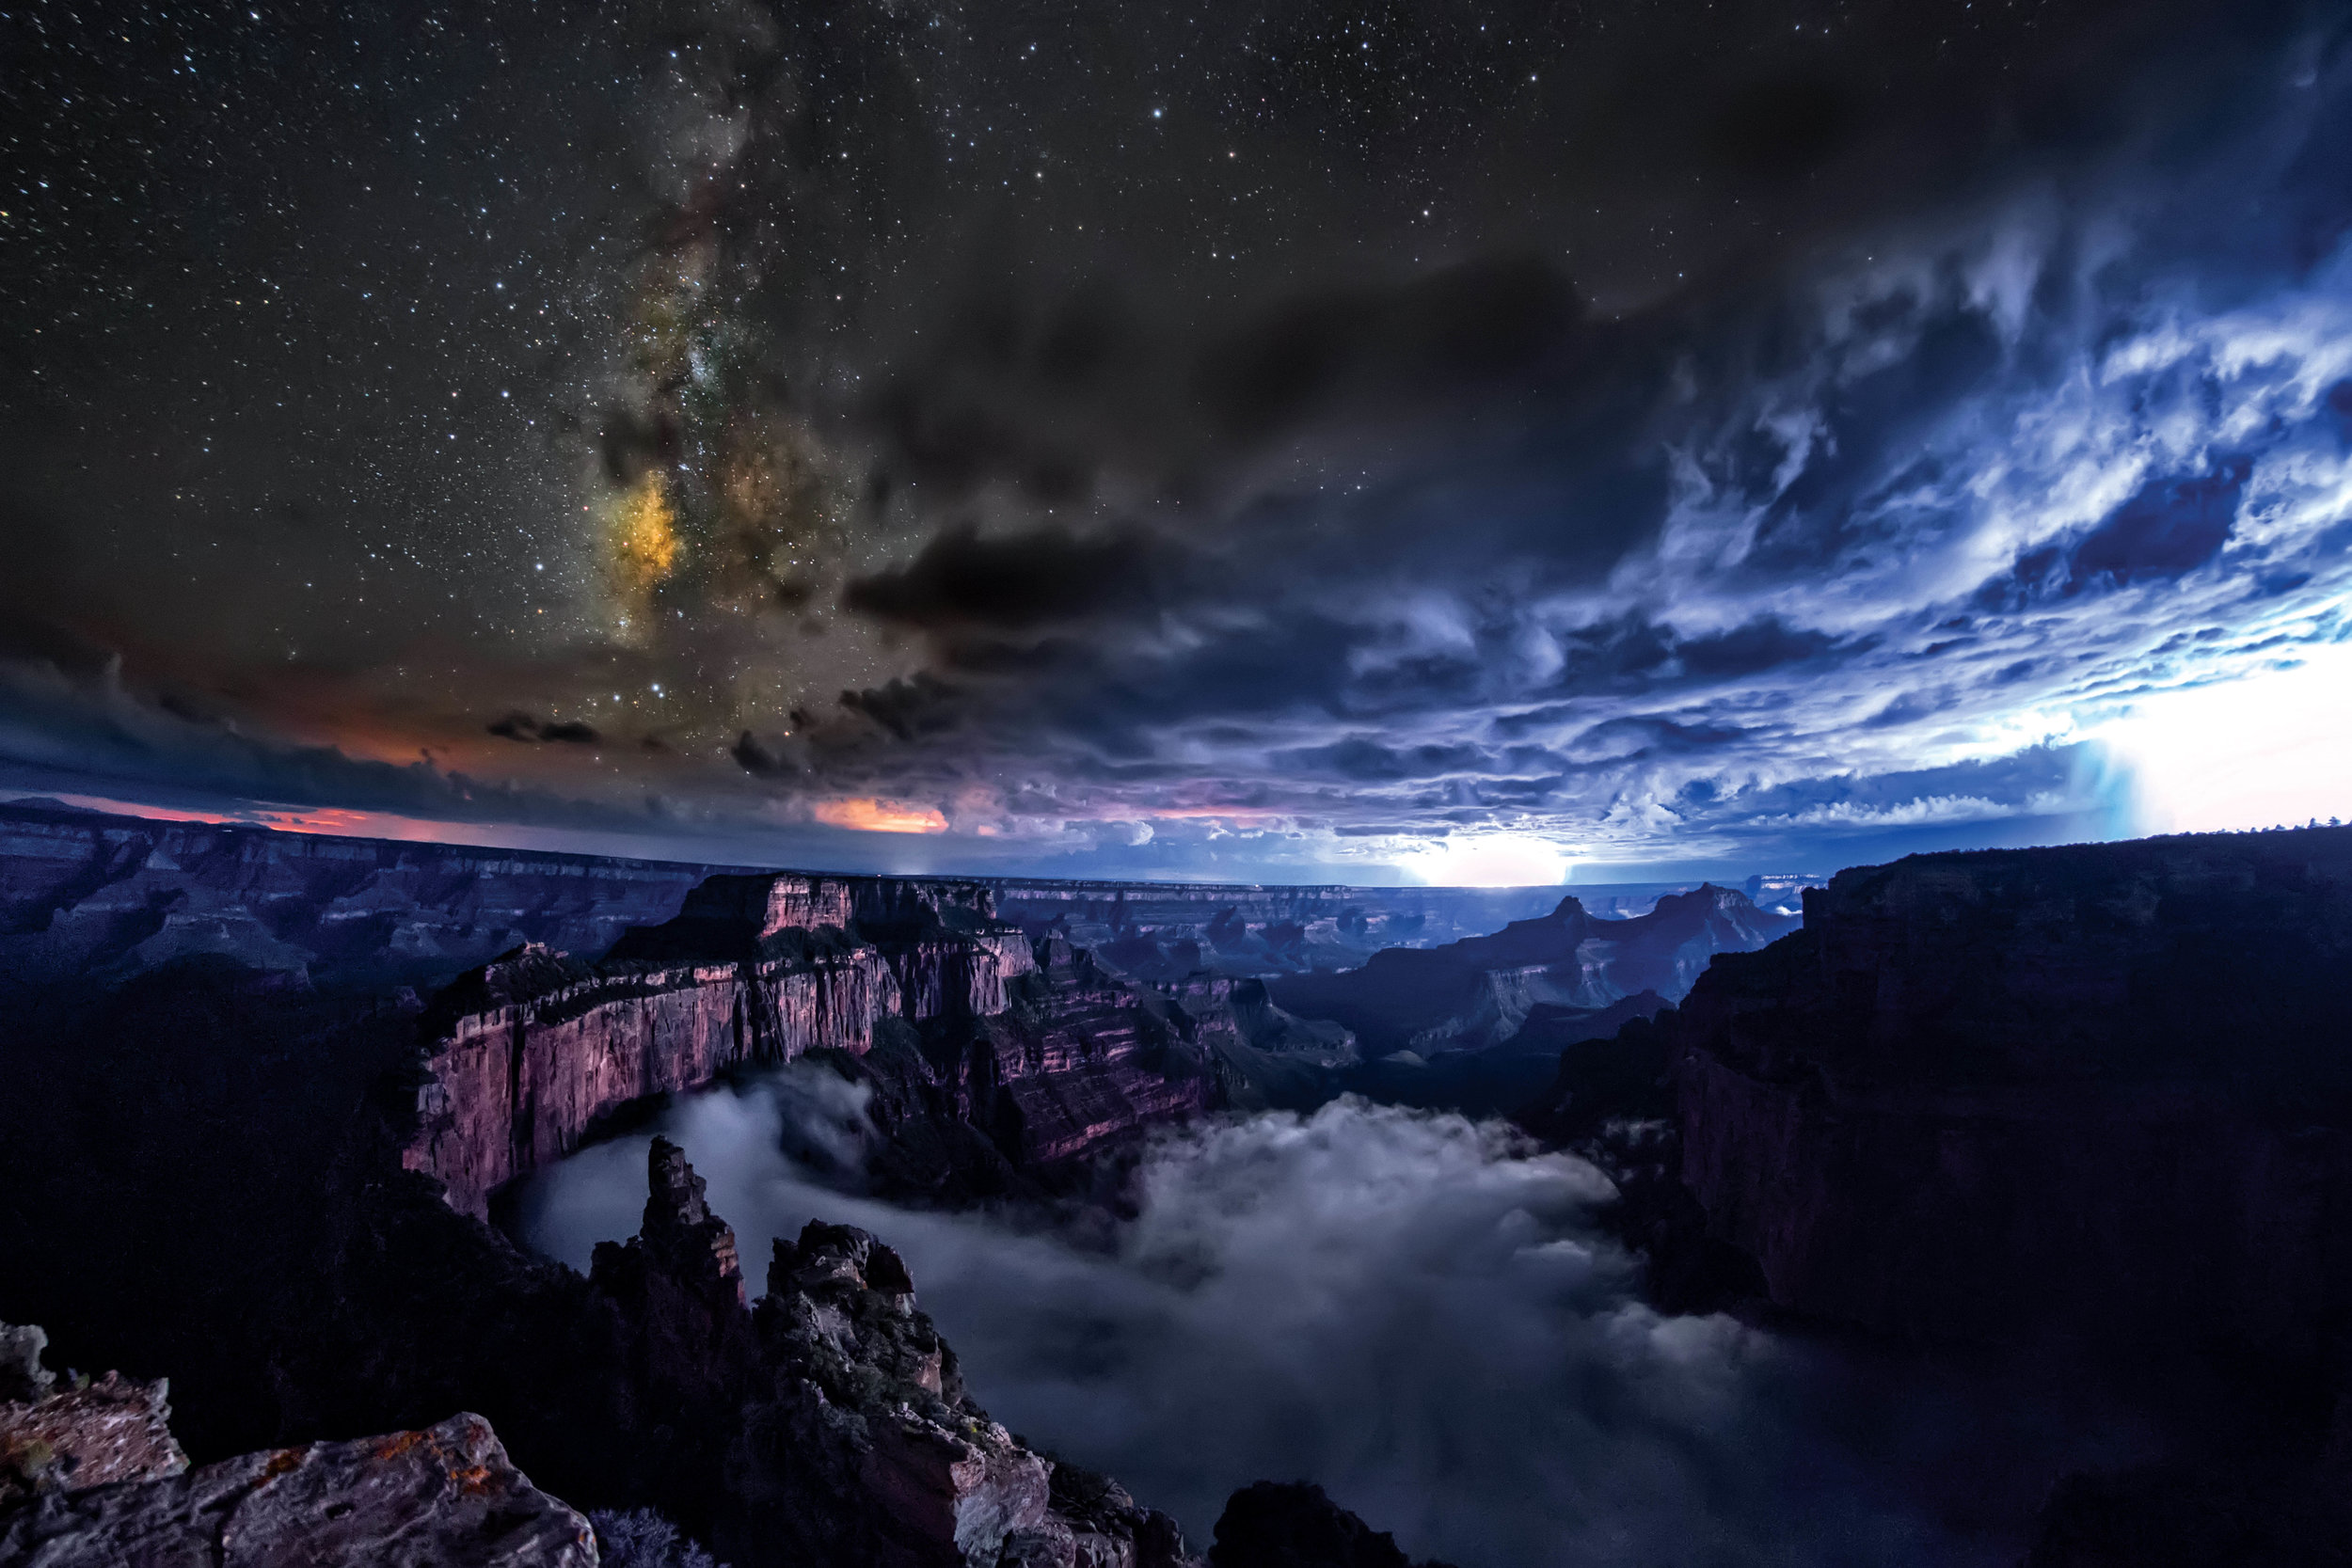 Awe-Inspiring Timelapse Captures a Rare Phenomenon at the Grand Canyon